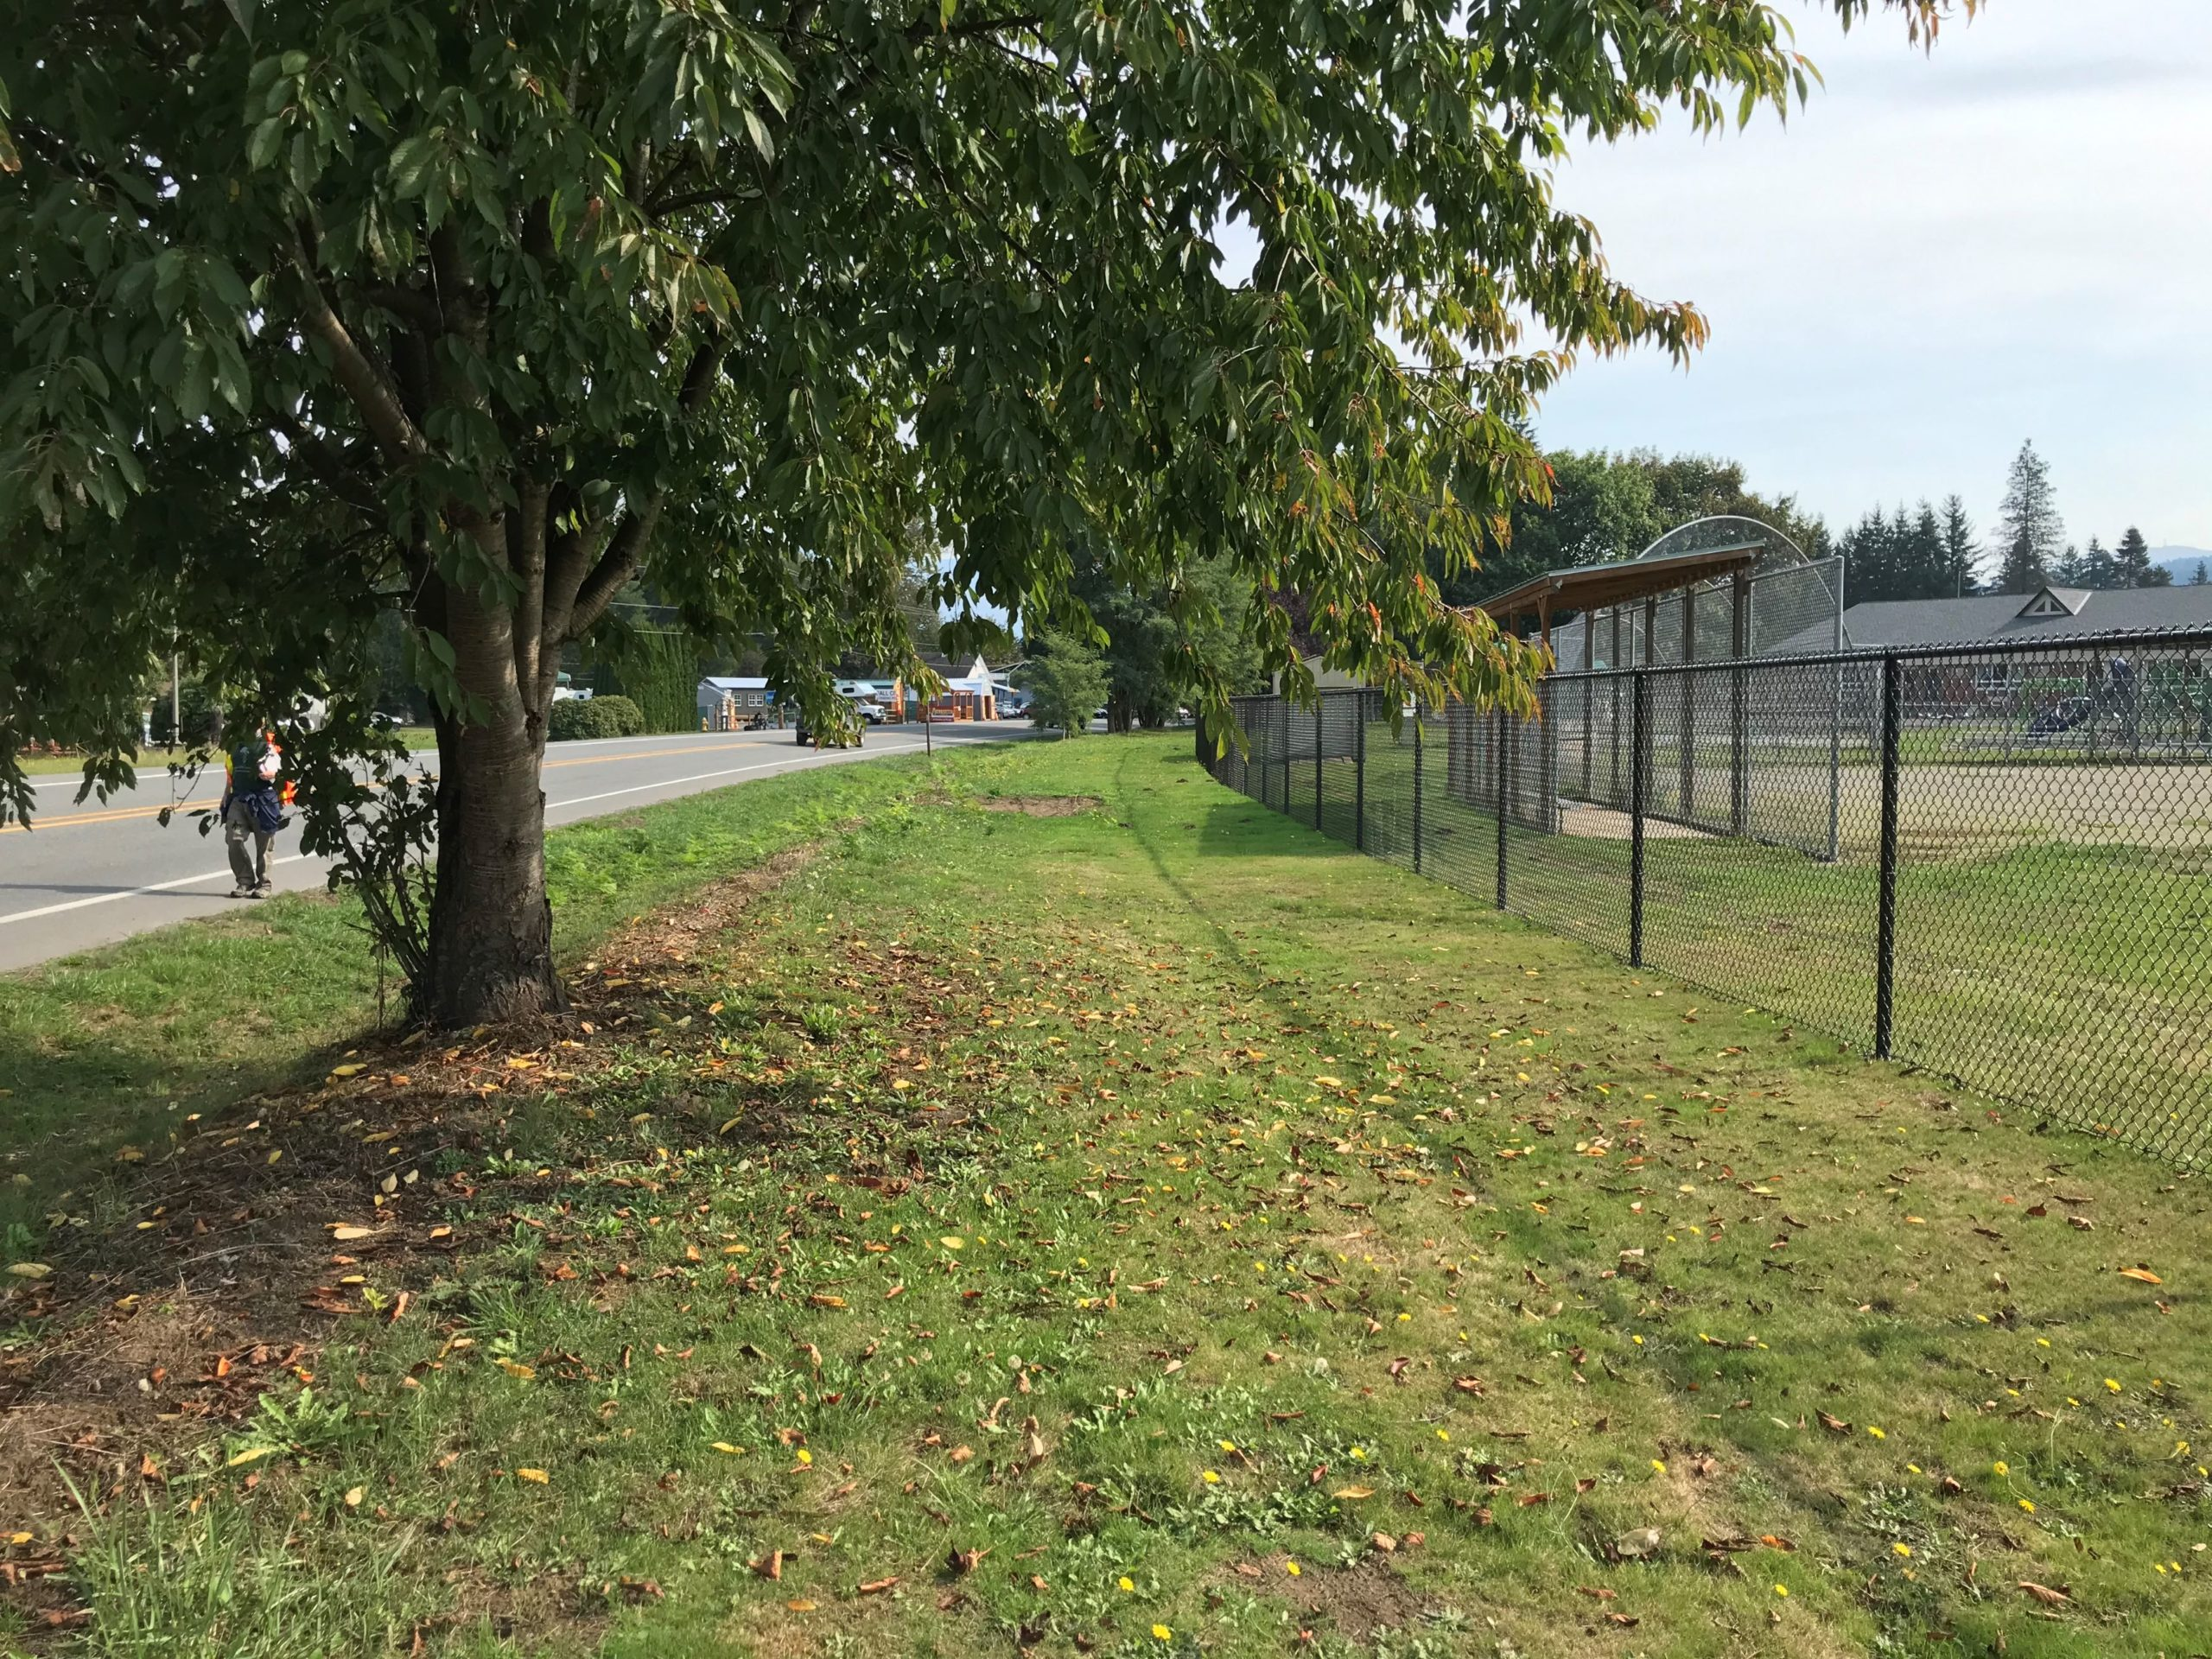 Image of the right of way along SR 202 in Fall City, adjacent to the Chief Kanim Middle School, which is the future location of the West Side Trail.